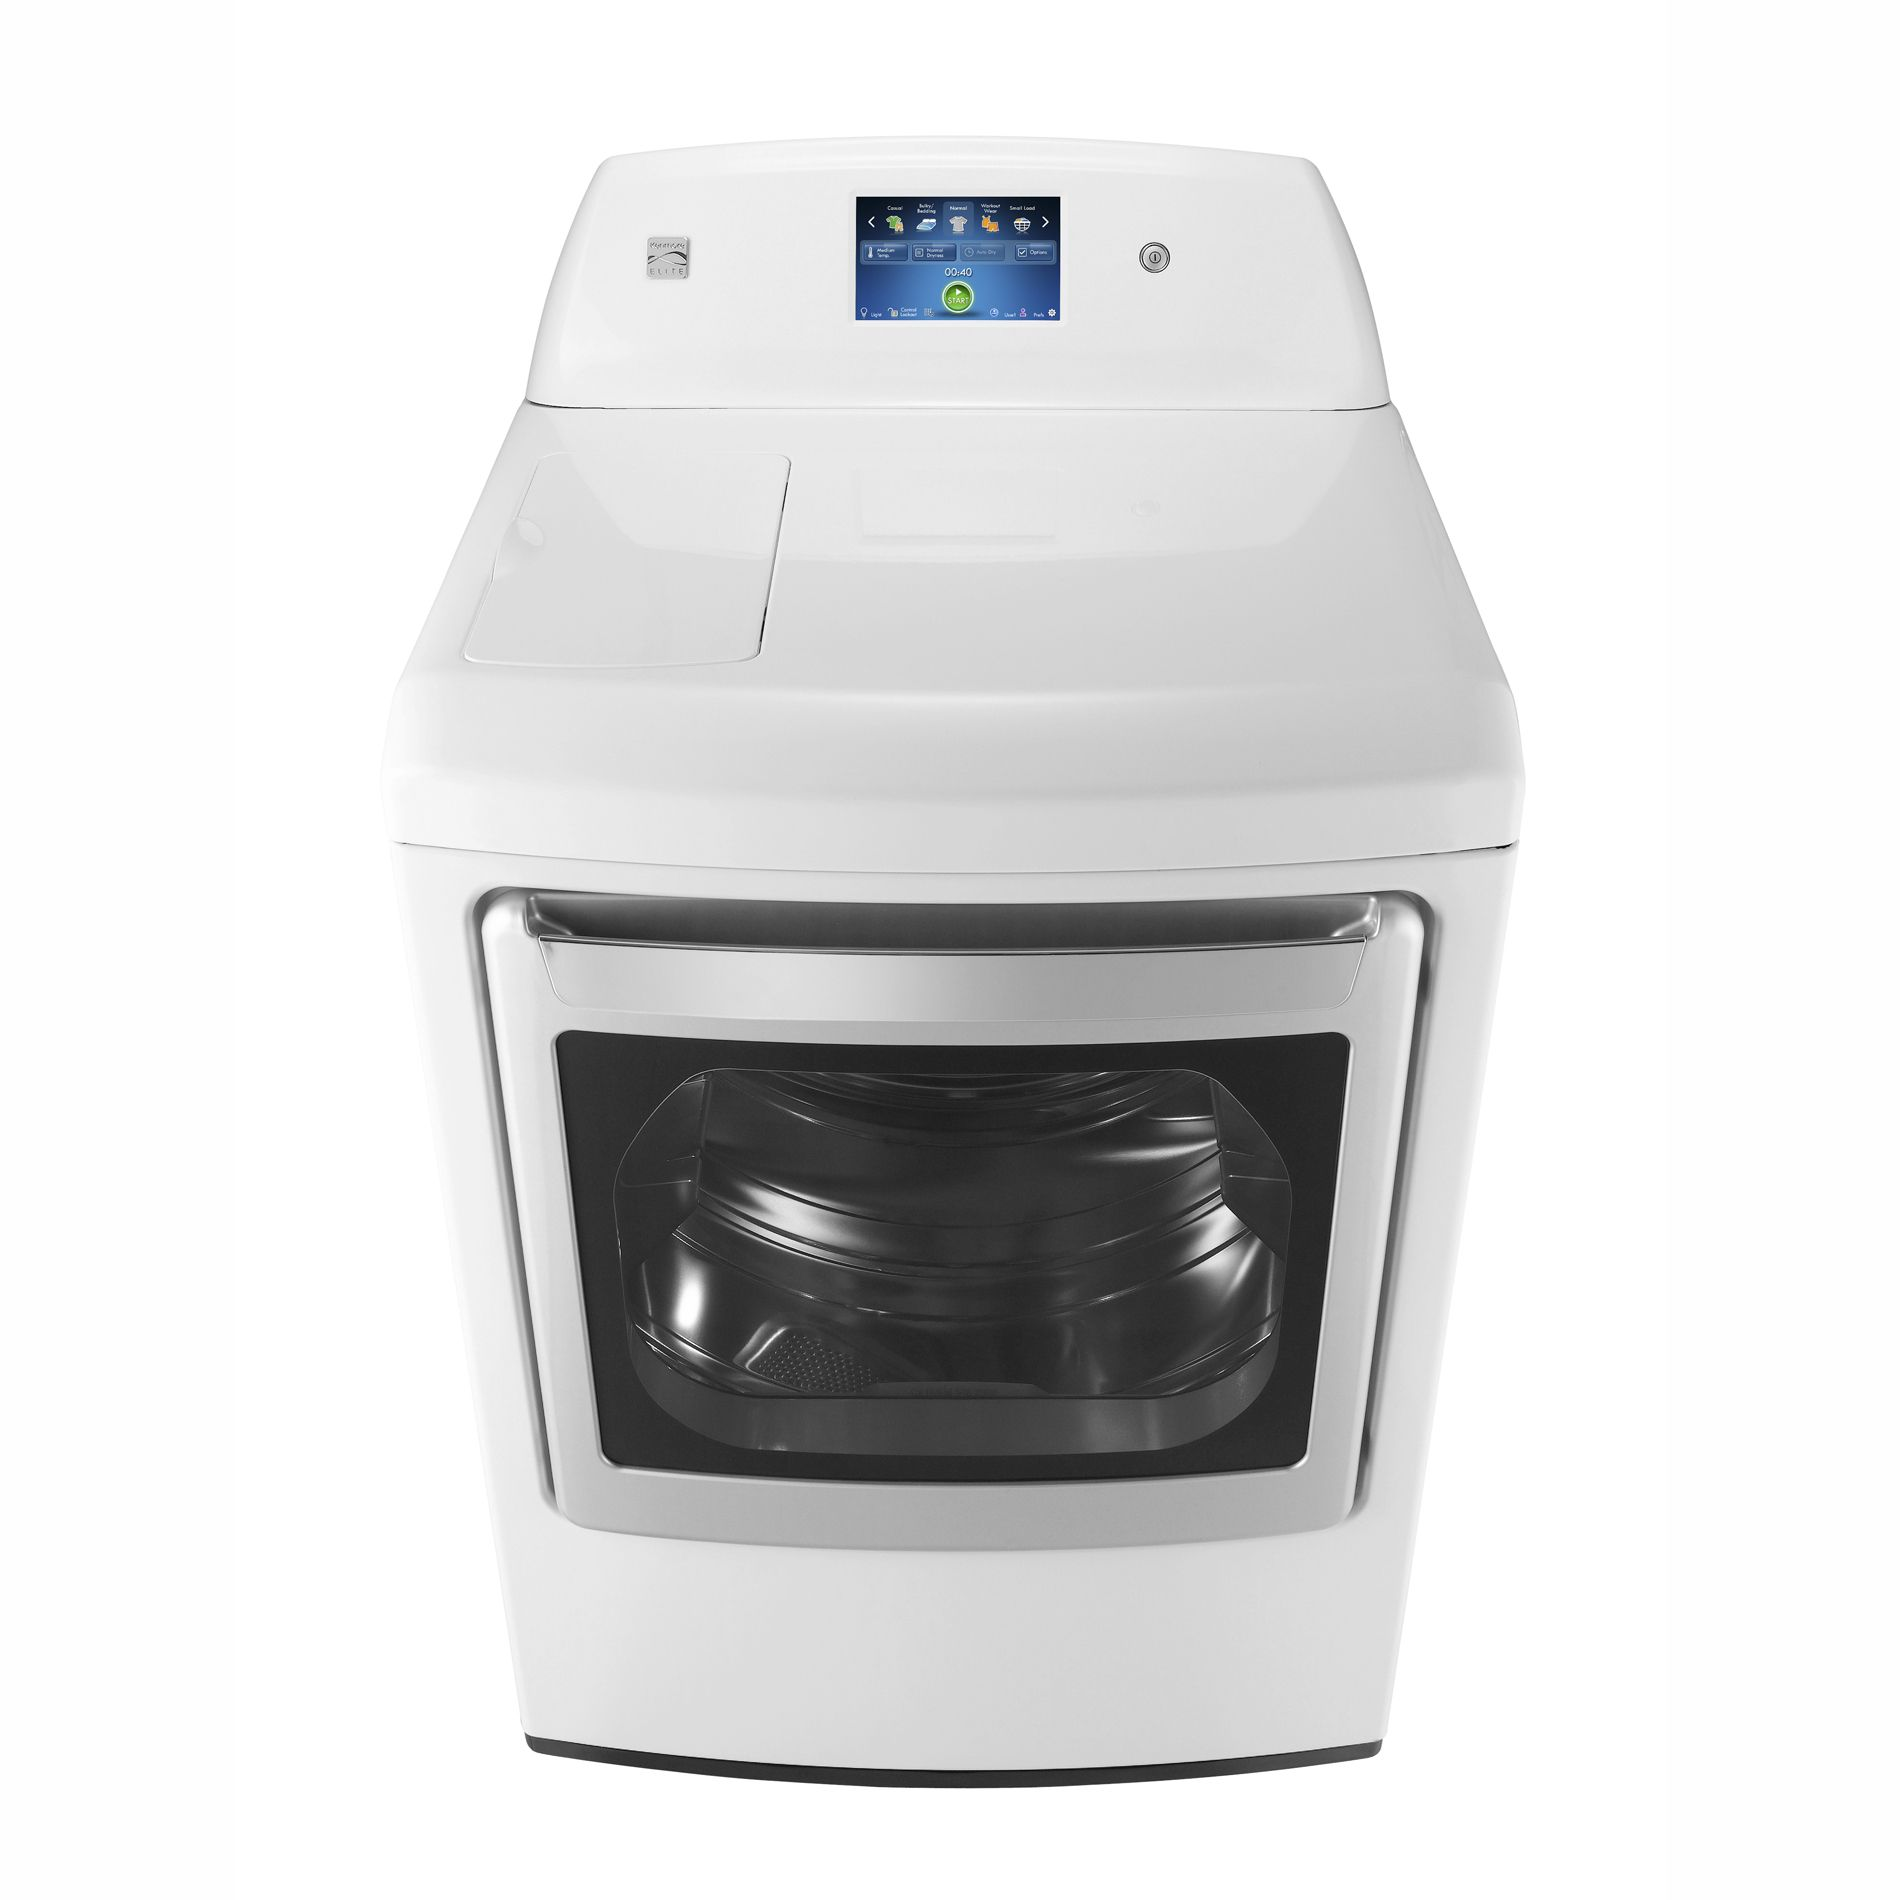 Kenmore Elite 7.3 cu. ft. Gas Steam Dryer w/ LCD ColorTouch Display - White